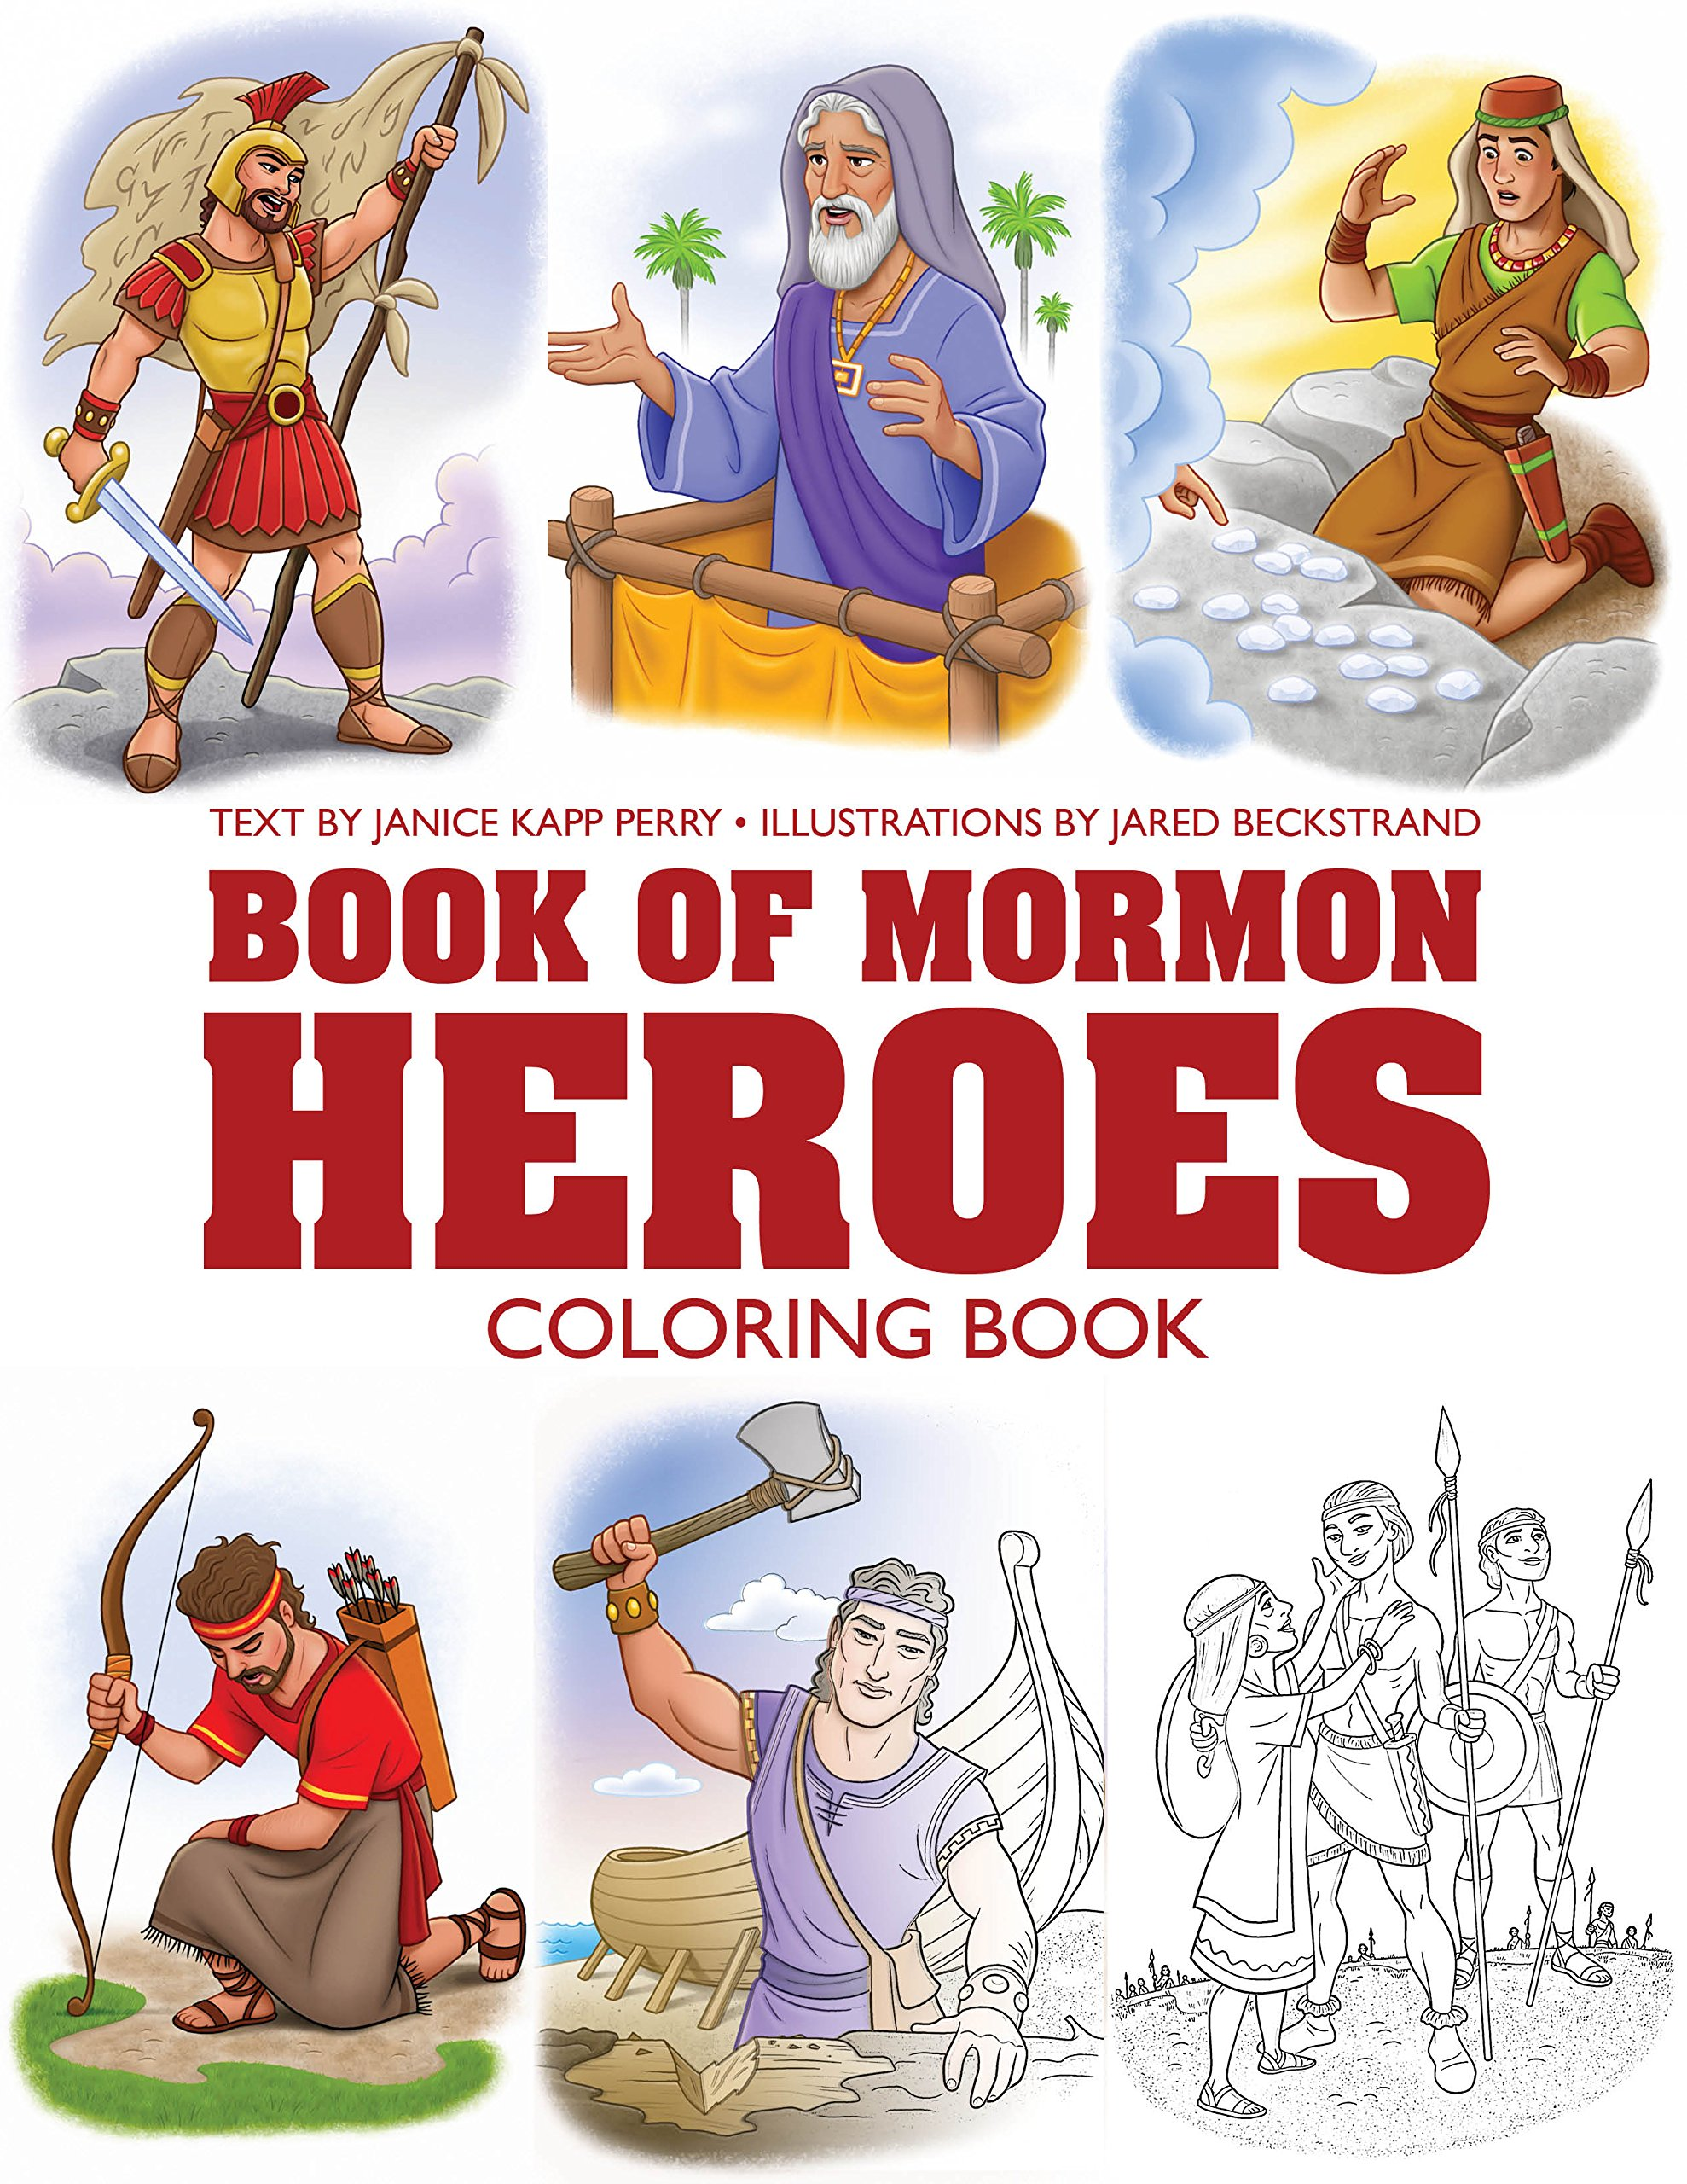 My Book Of Mormon Heroes Coloring Book Janice Kapp Perry And Jared Beckstrand 9781524402679 Amazon Com Books